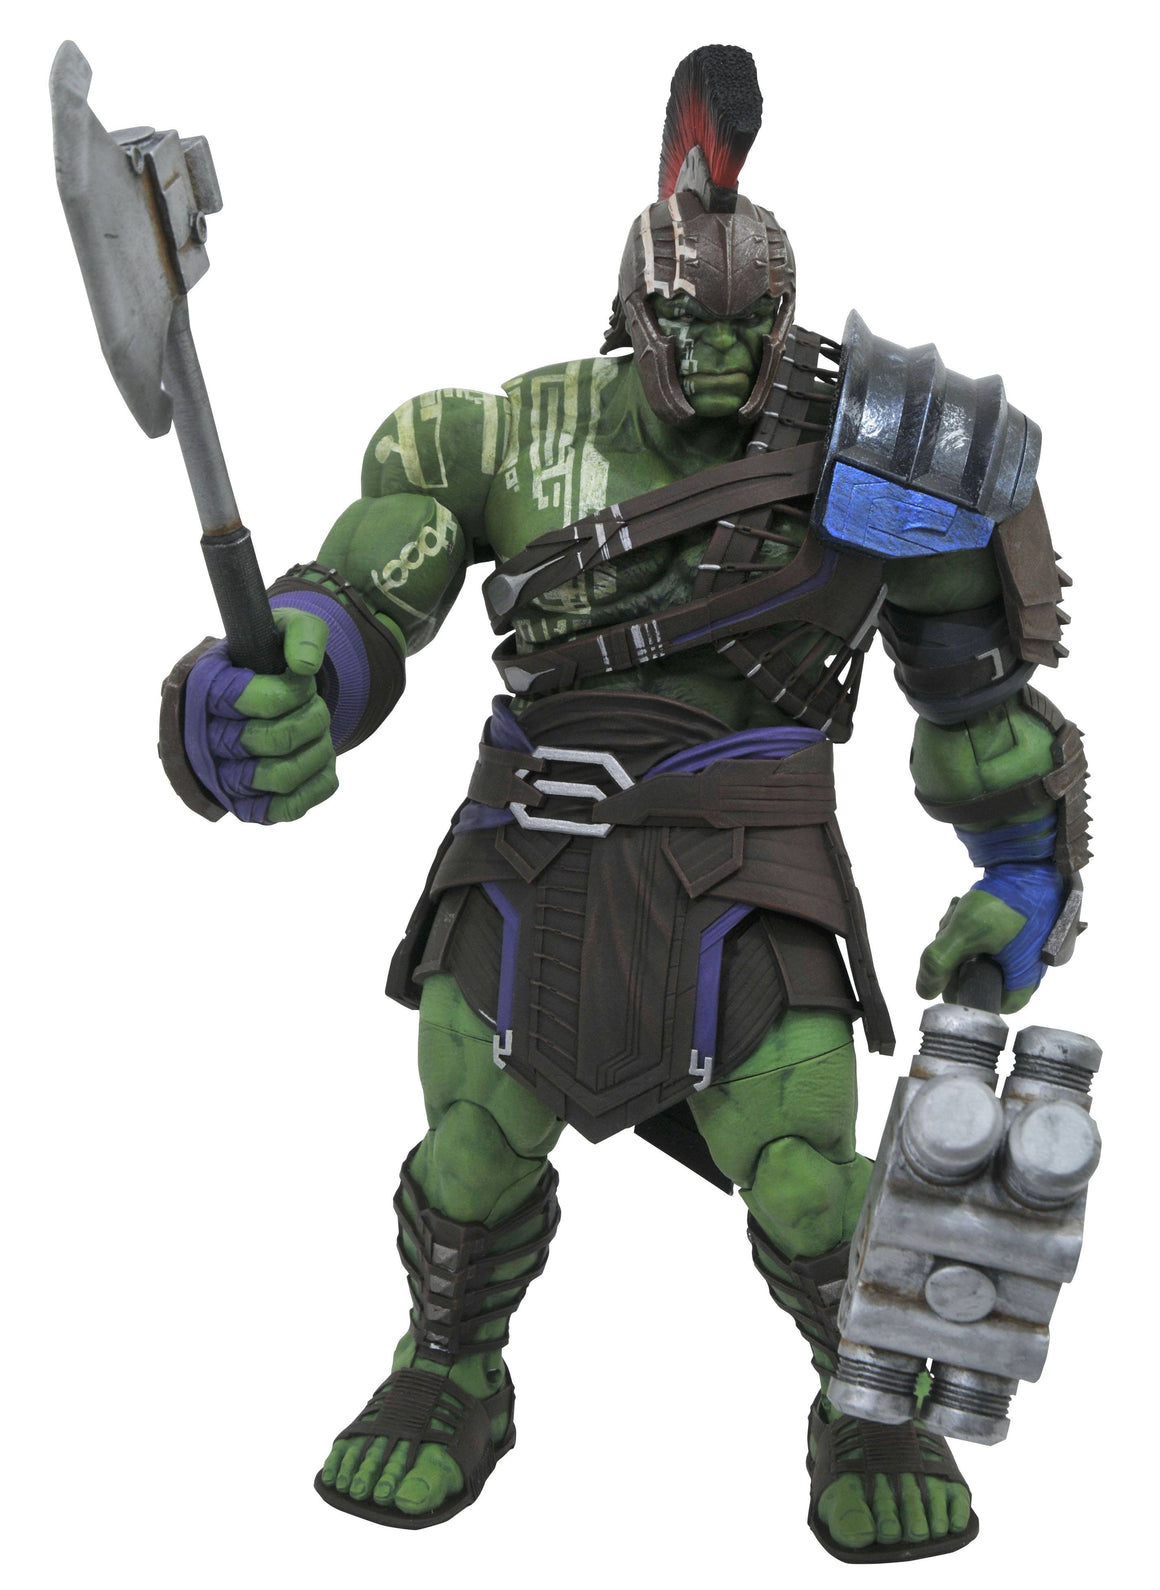 Marvel Select Thor Ragnarok Gladiator Hulk Action Figure by Diamond Select Toys